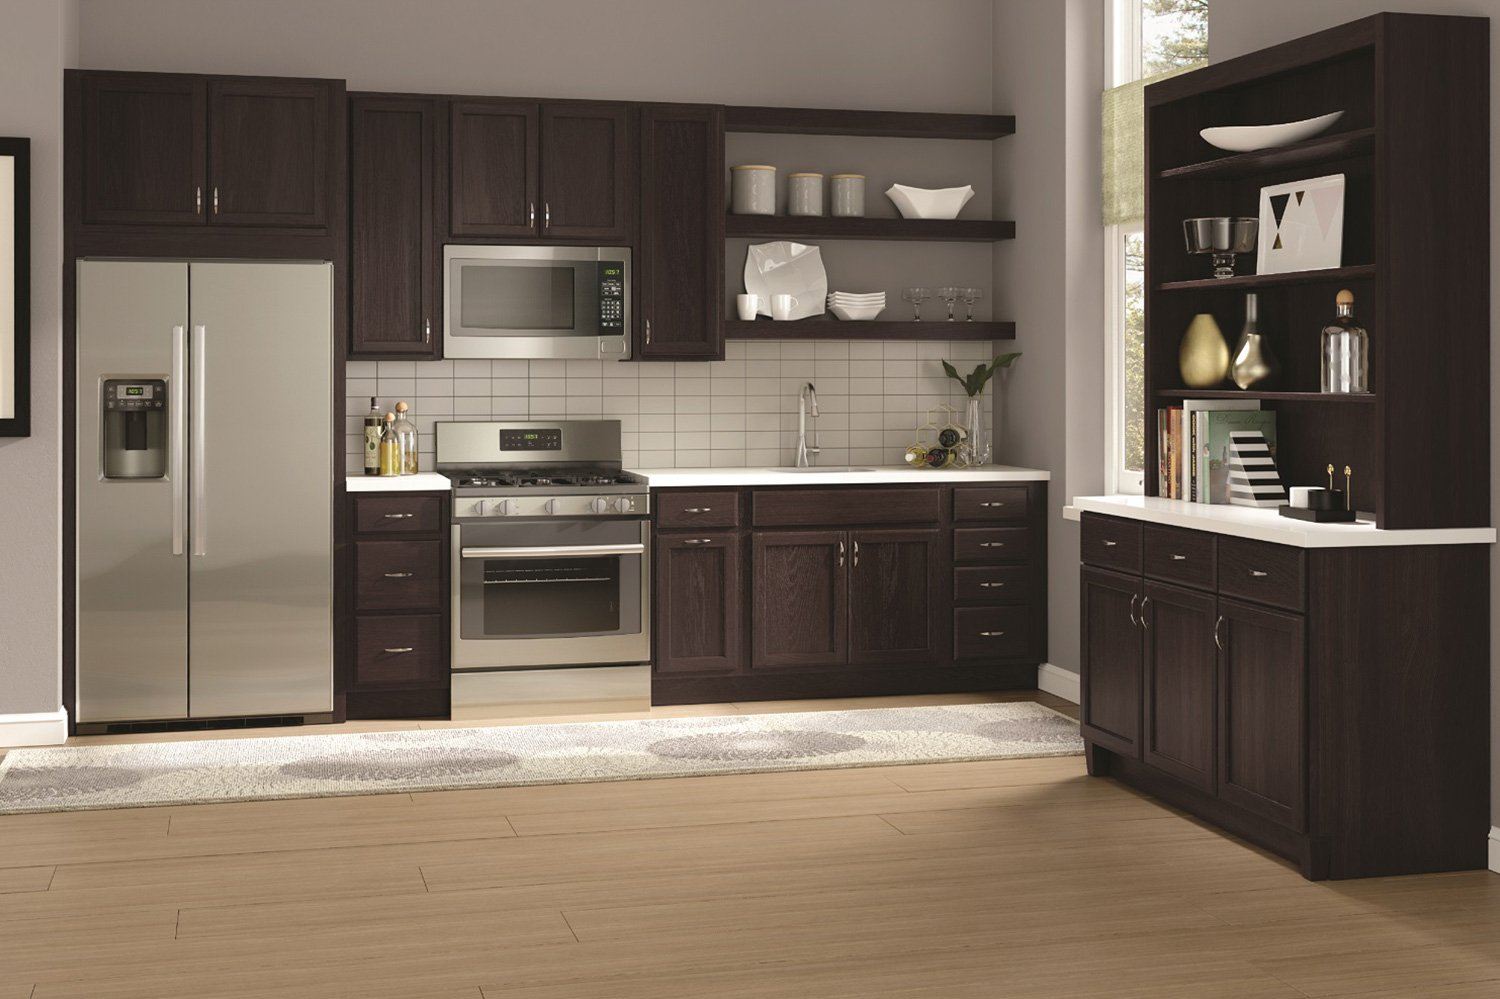 campbell's kitchen cabinets inc. photo gallery | lincoln, ne